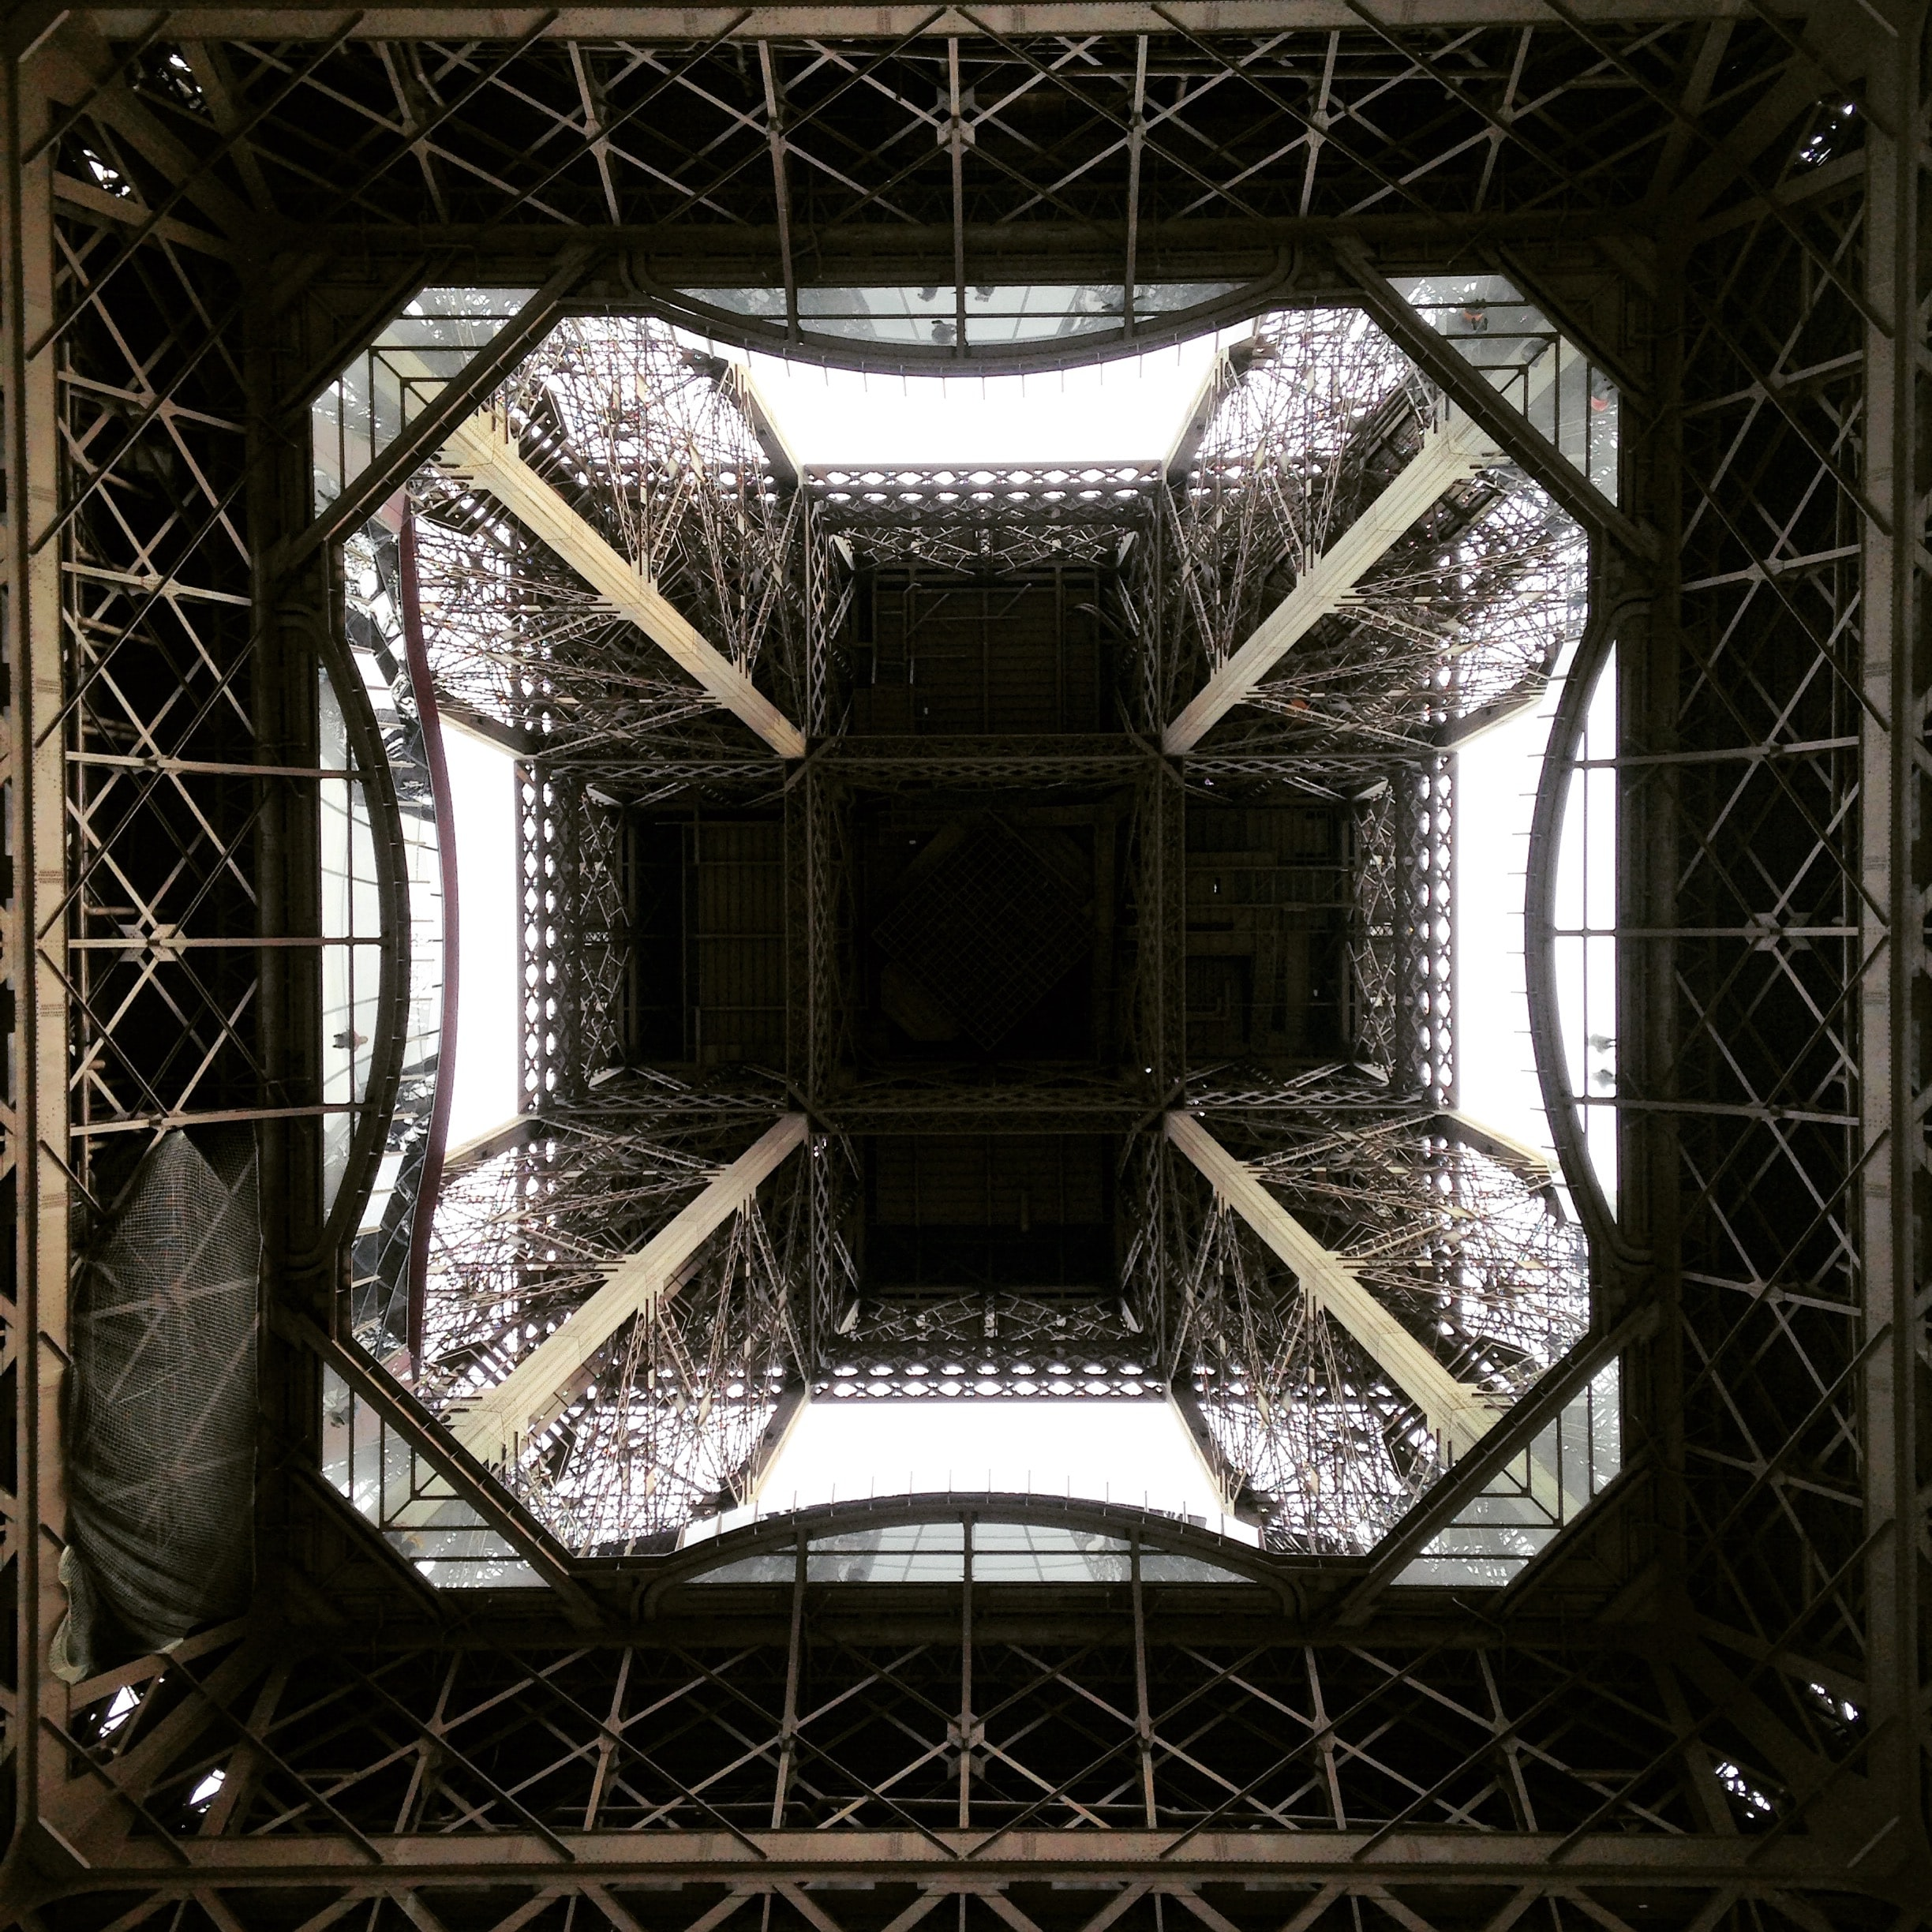 worm's eye view photography of steel structure